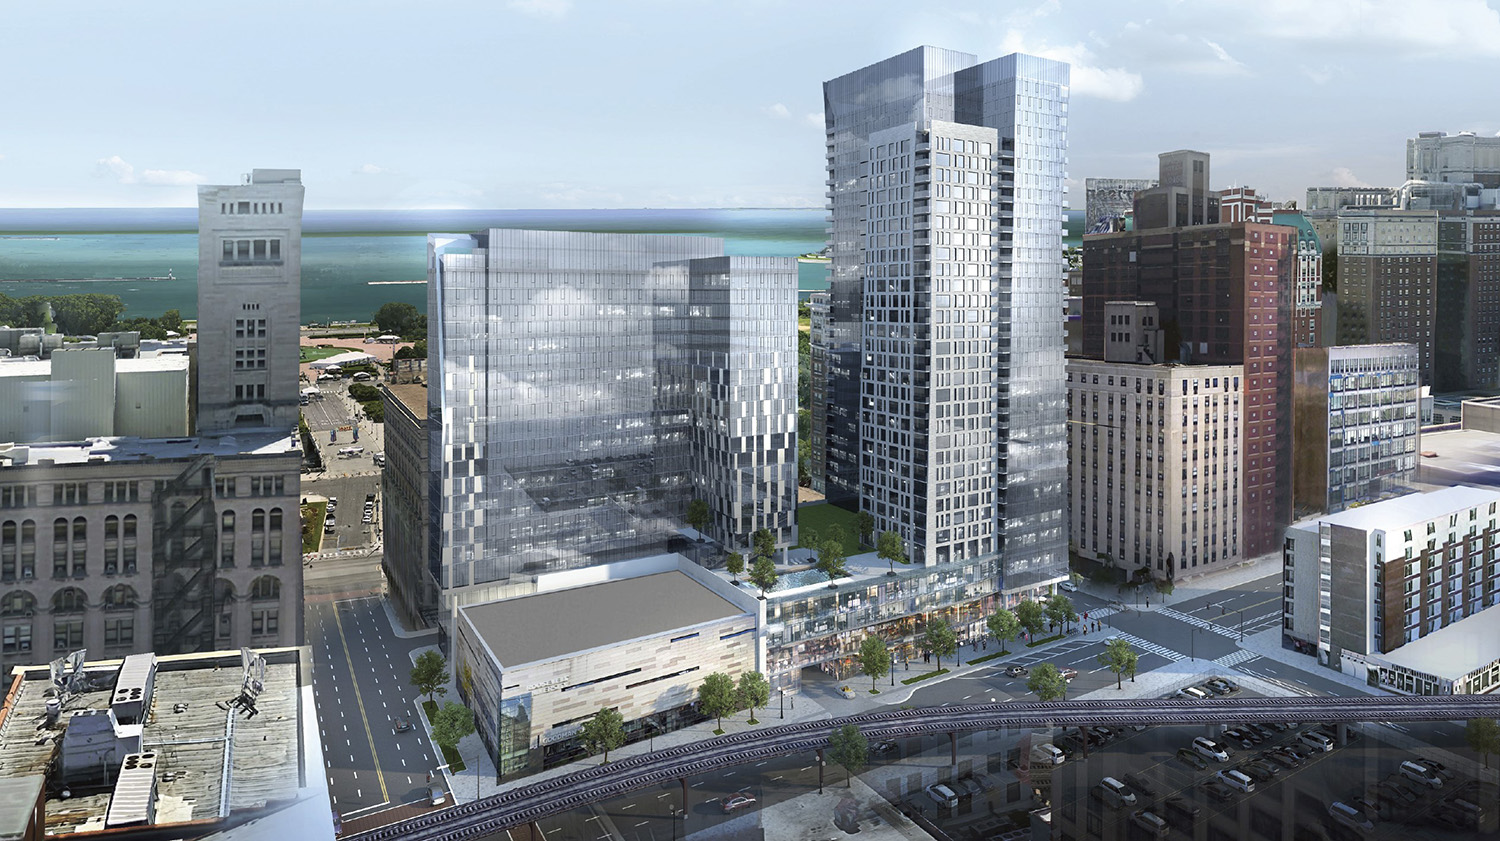 525 S Wabash Avenue. Rendering by BKV Group